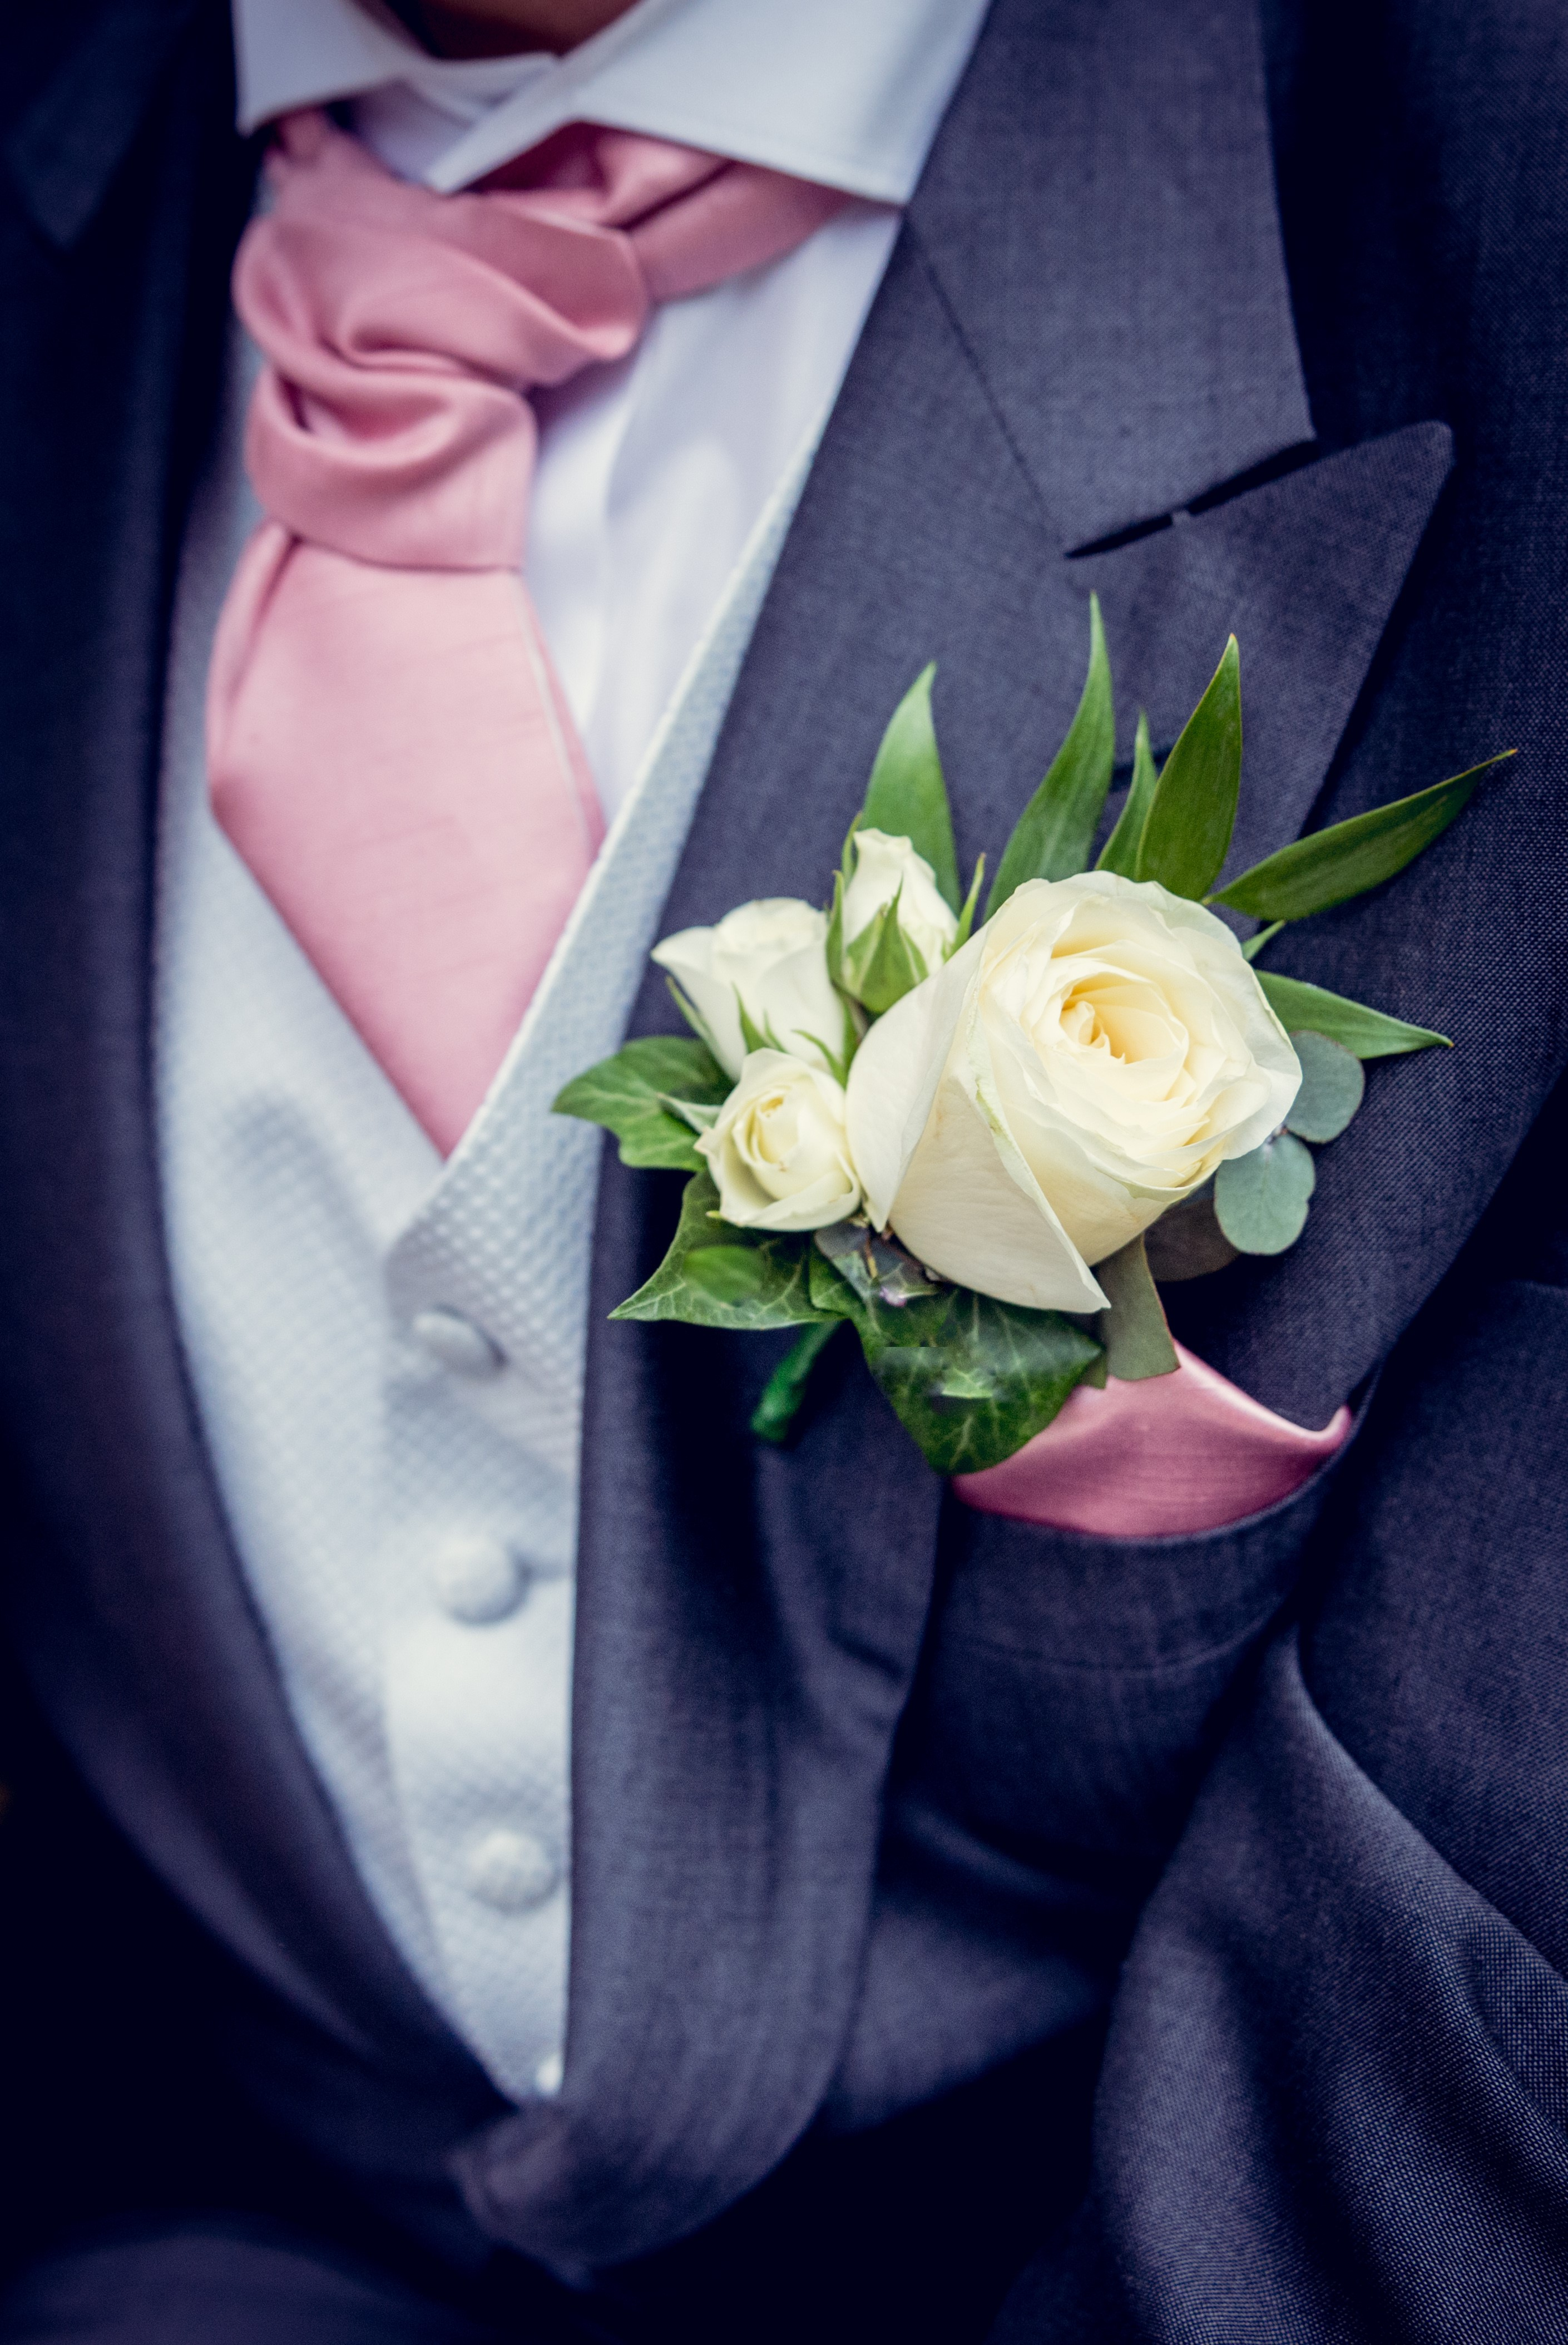 Ivory rose with spray roses blue suit flowers